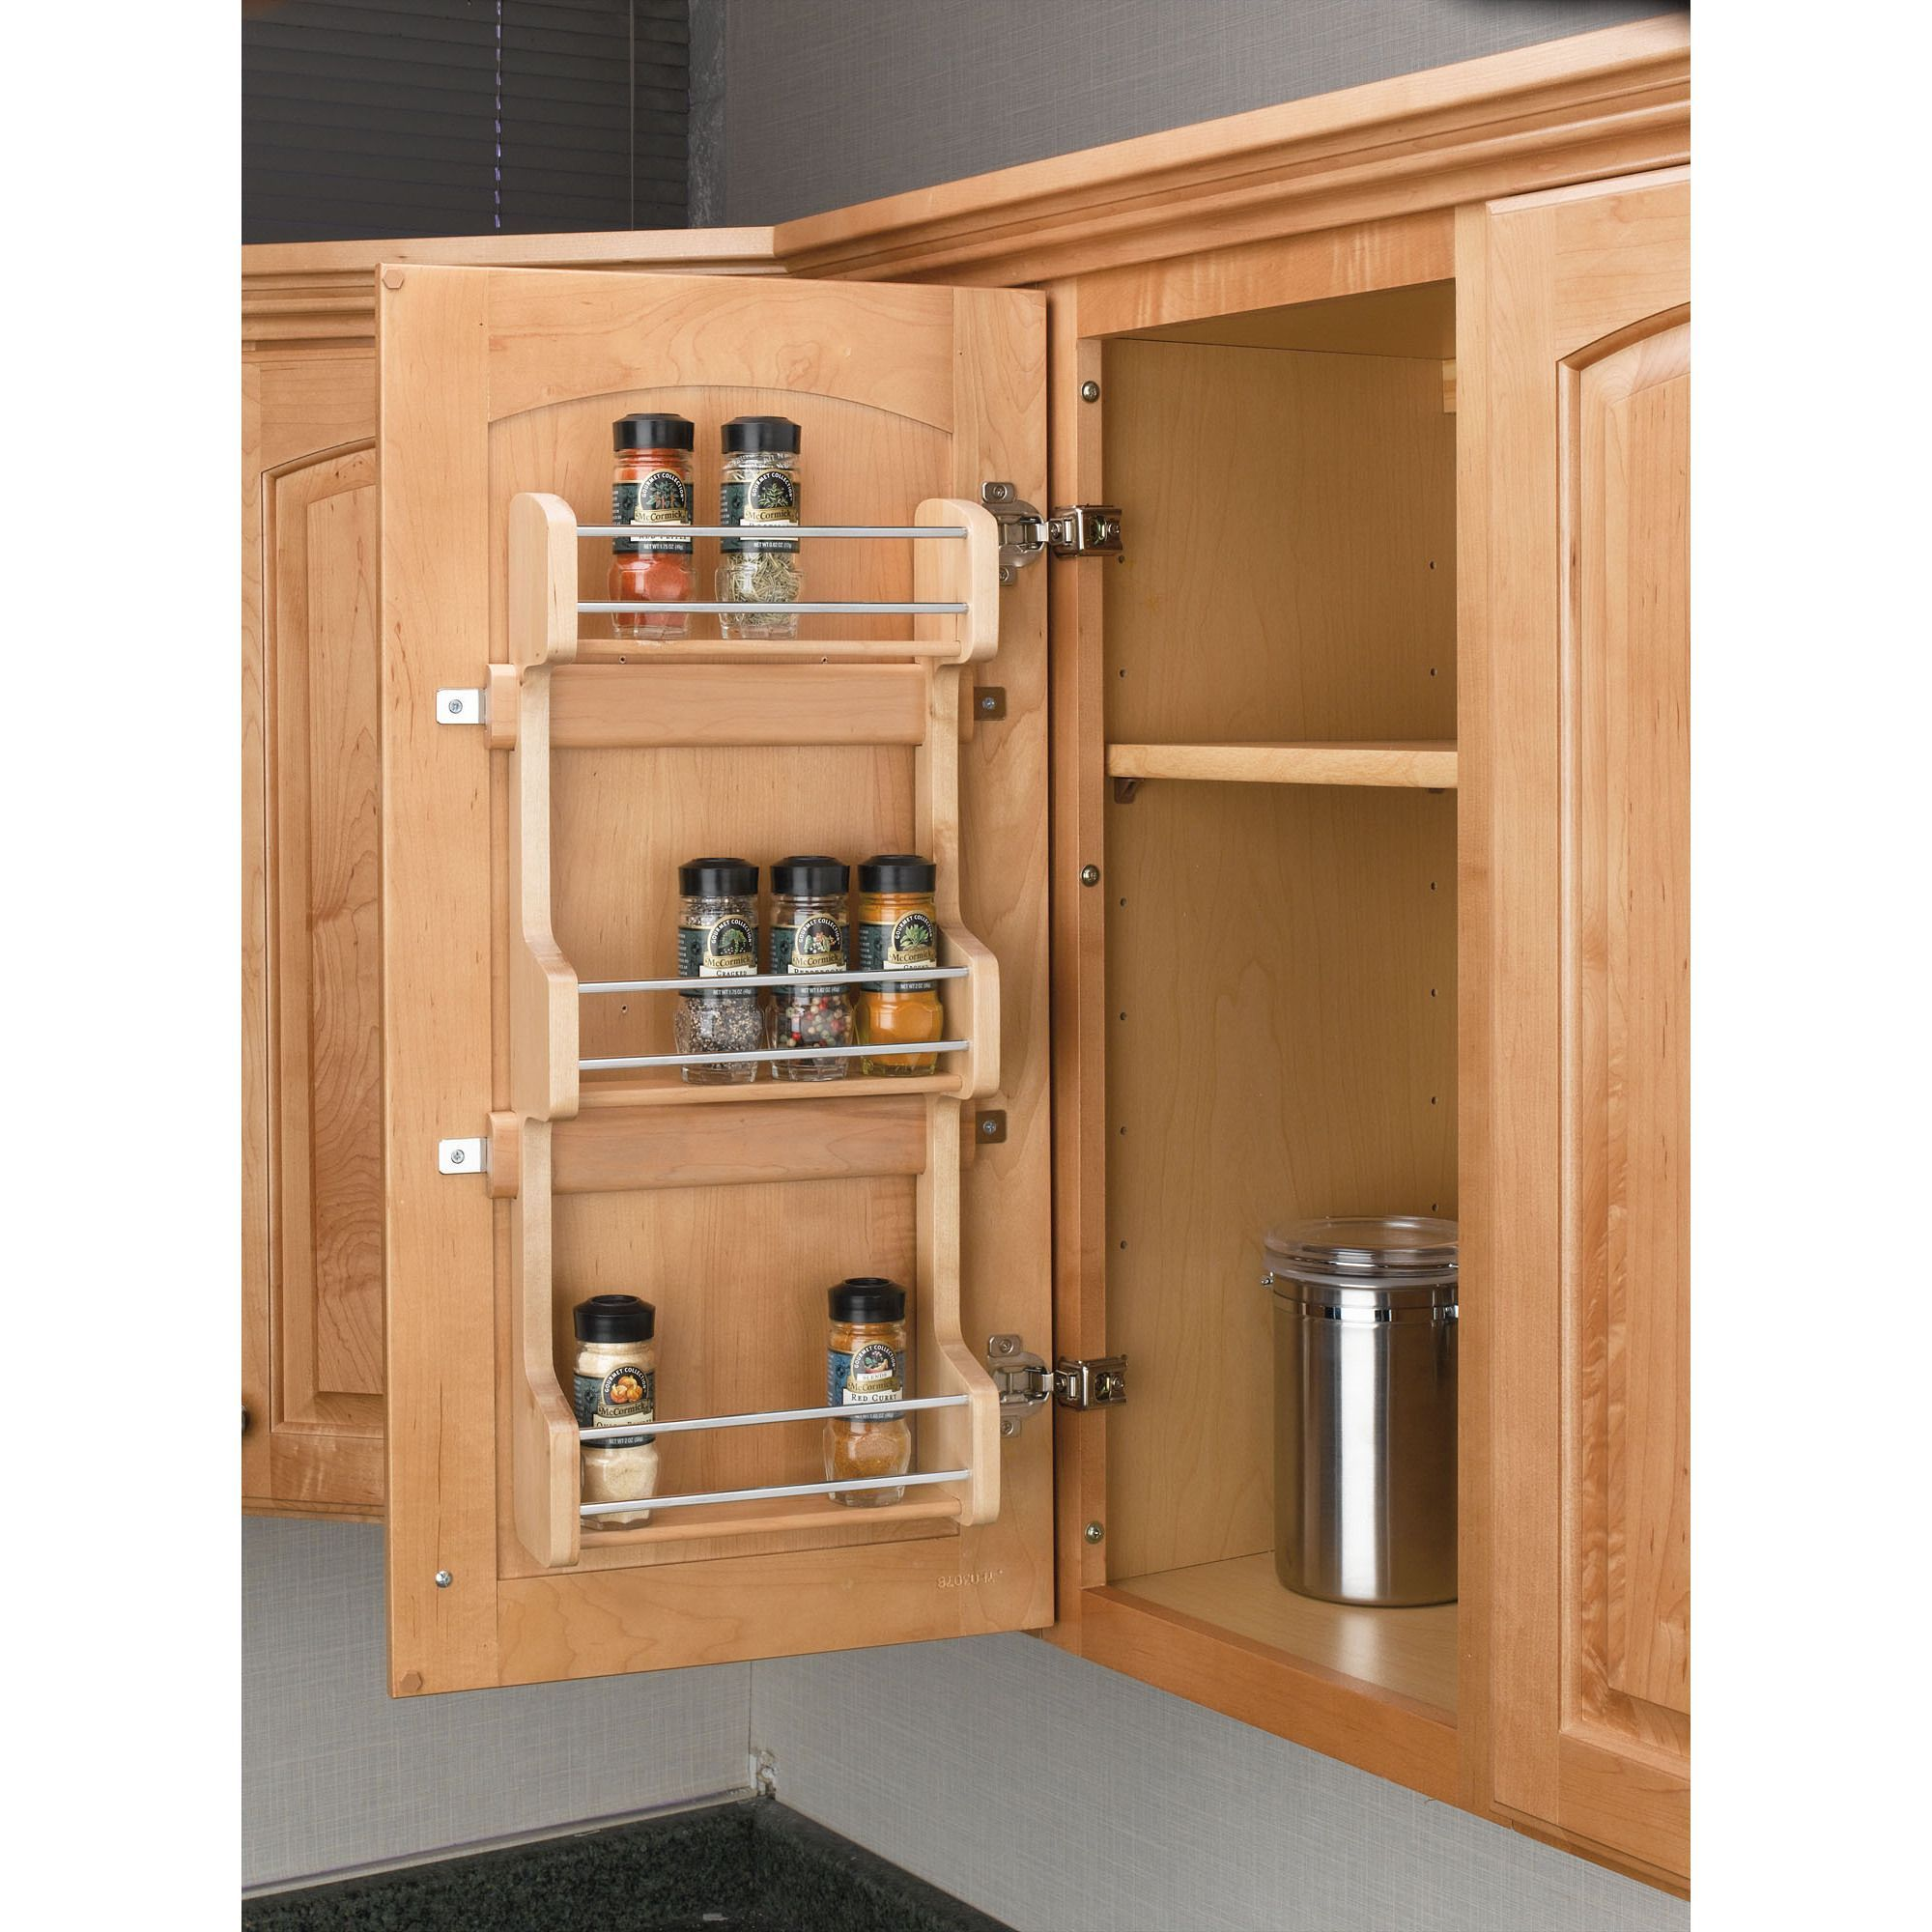 organize awesome and kitchen how cabinet rack roomy ideas spice both to for of cramped